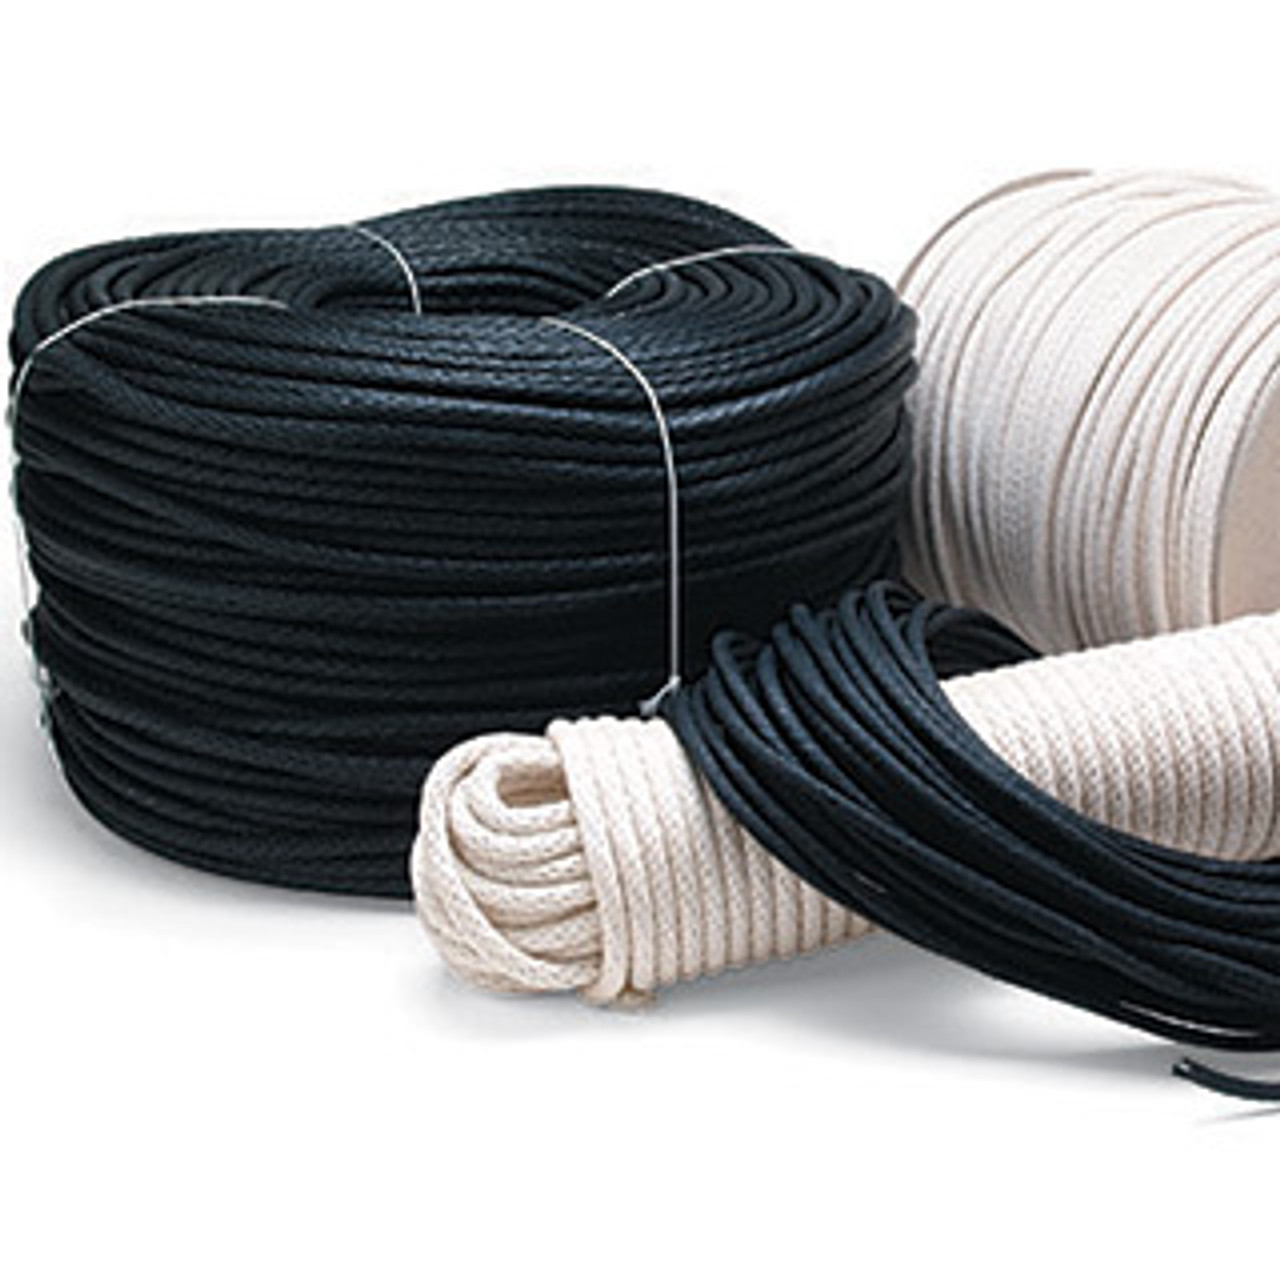 Sash Cord - Black - 100 ft. #4